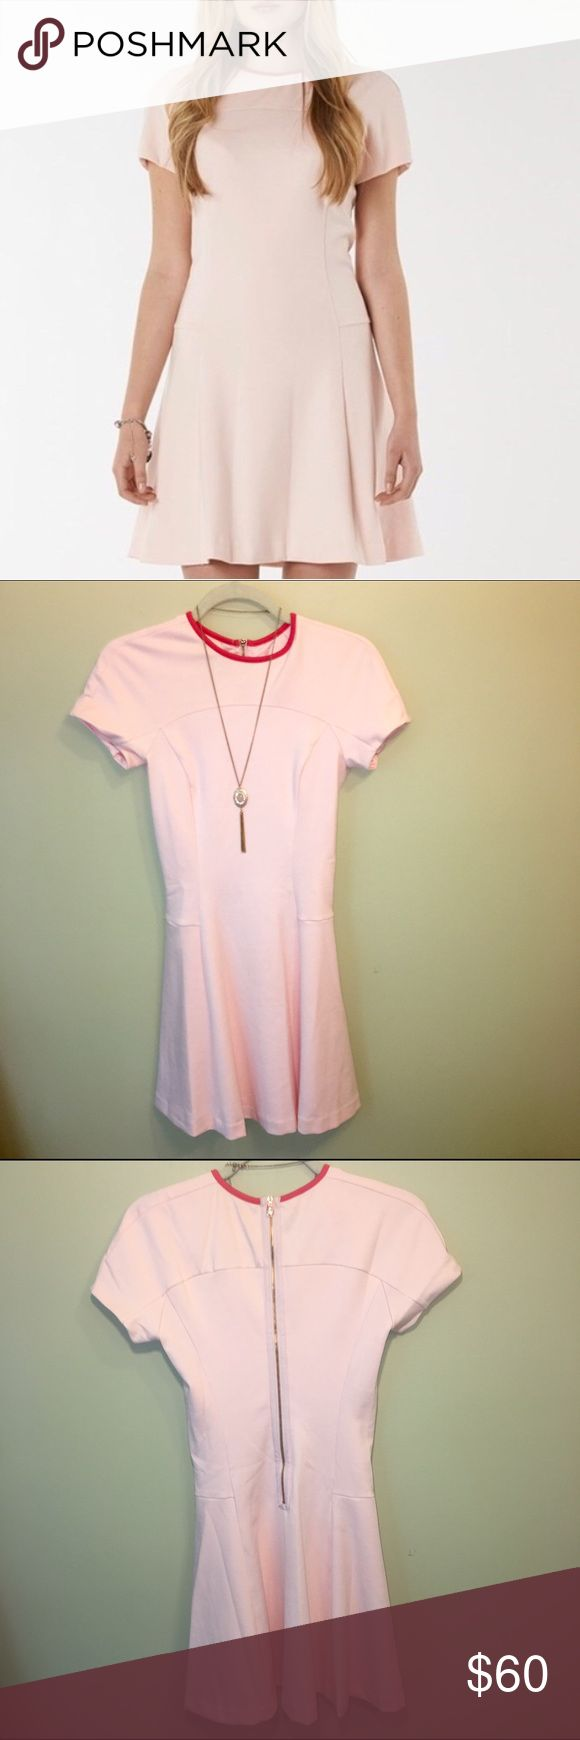 Ted Baker Fit & Flare Soft Pink Dress NWOT Ted Baker Fit & Flare Soft Pink Dress. Size 2. Original tag has been removed due to prevent store return. Never been worn. Bundle two or more items and get 20% off your purchase. Ted Baker Dresses Mini